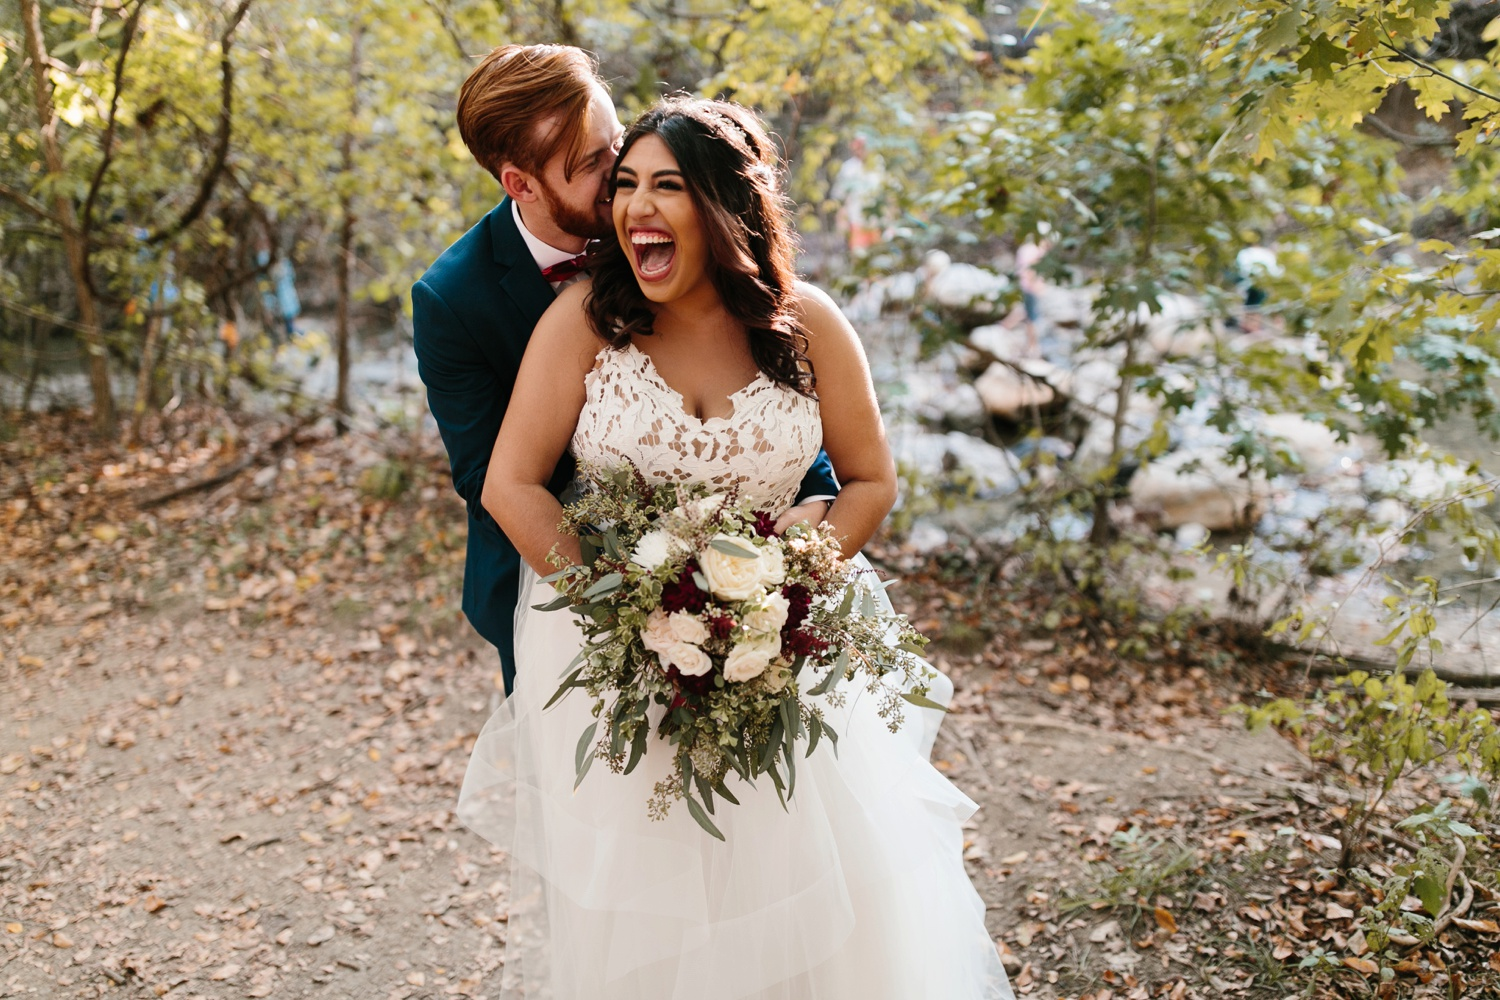 Grant + Lysette | a vibrant, deep burgundy and navy, and mixed metals wedding at Hidden Pines Chapel by North Texas Wedding Photographer Rachel Meagan Photography 193